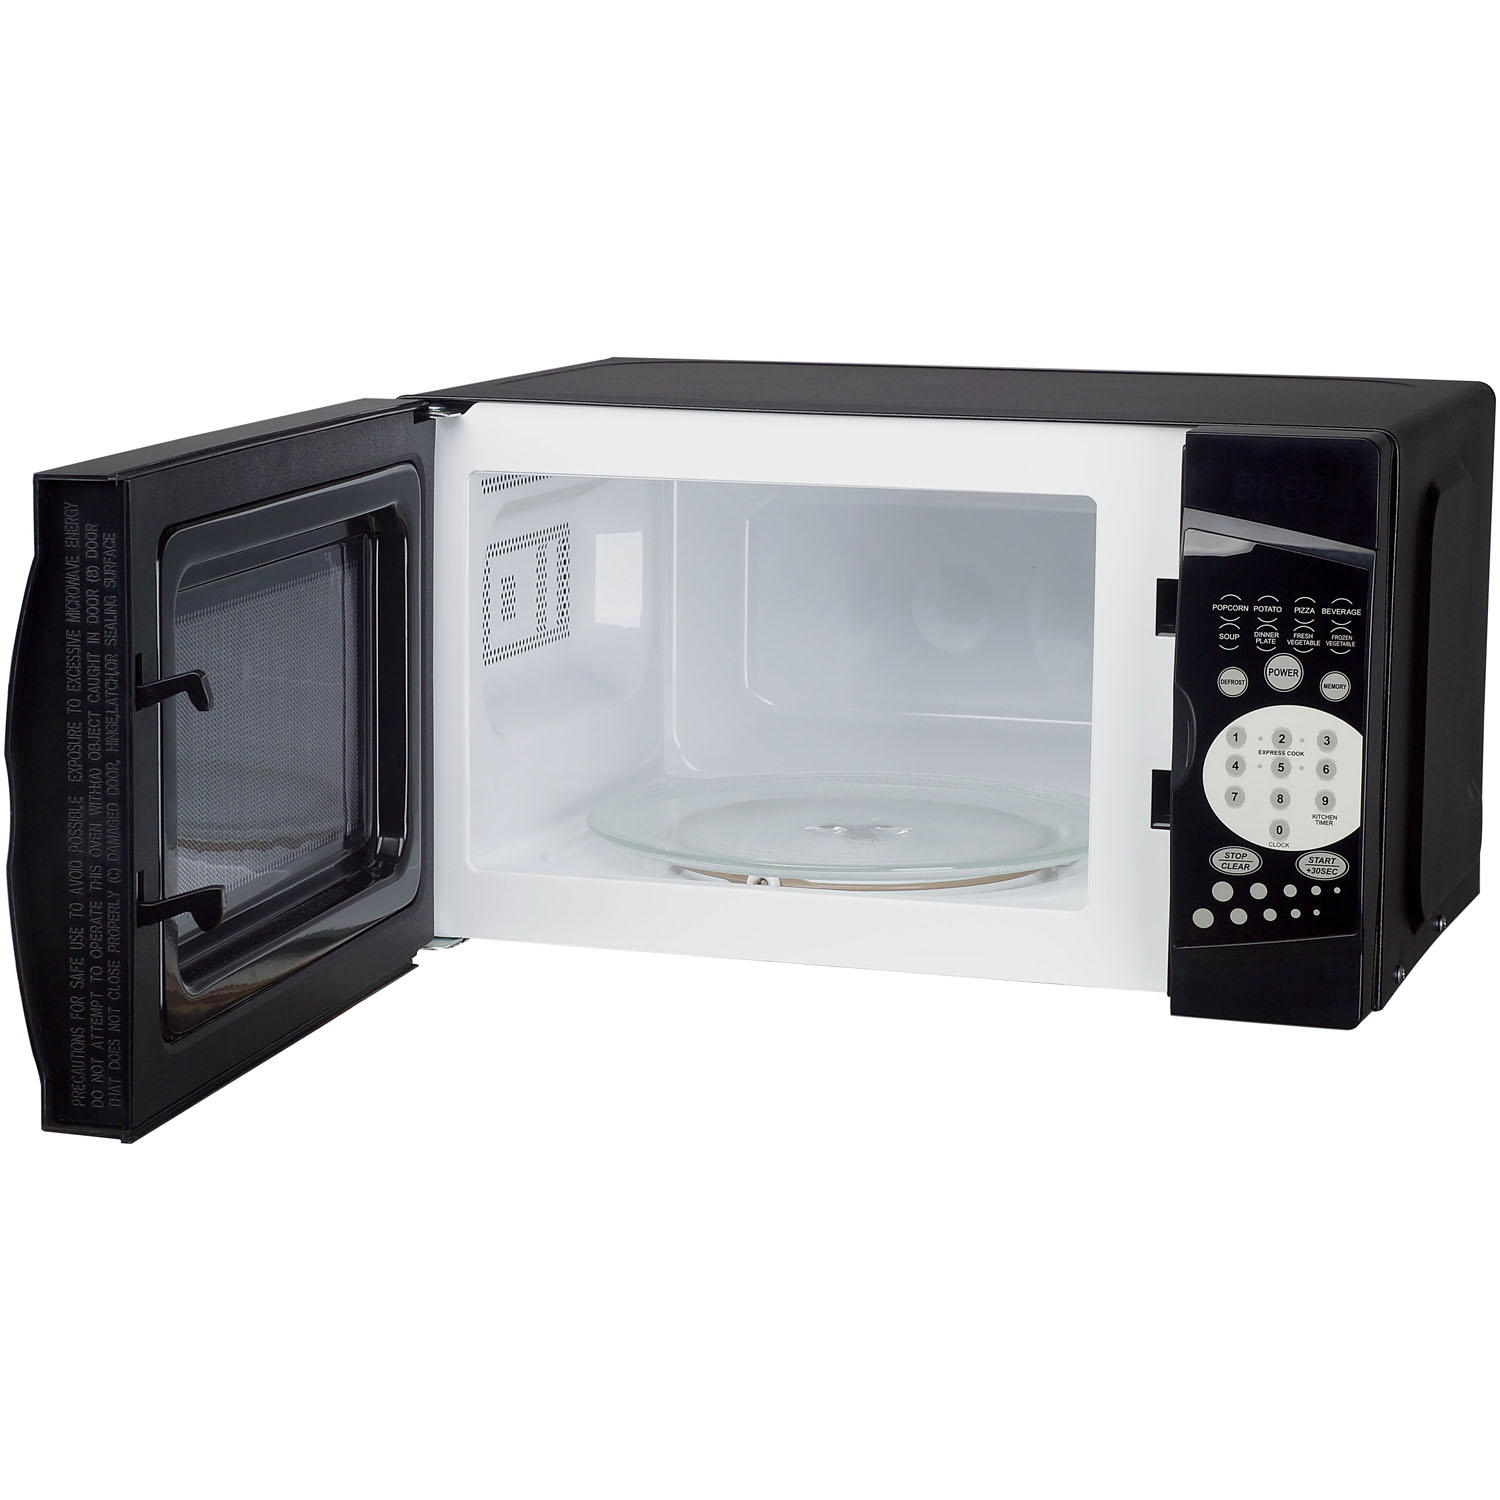 magic chef 0 7 cu ft 700w countertop microwave oven in black